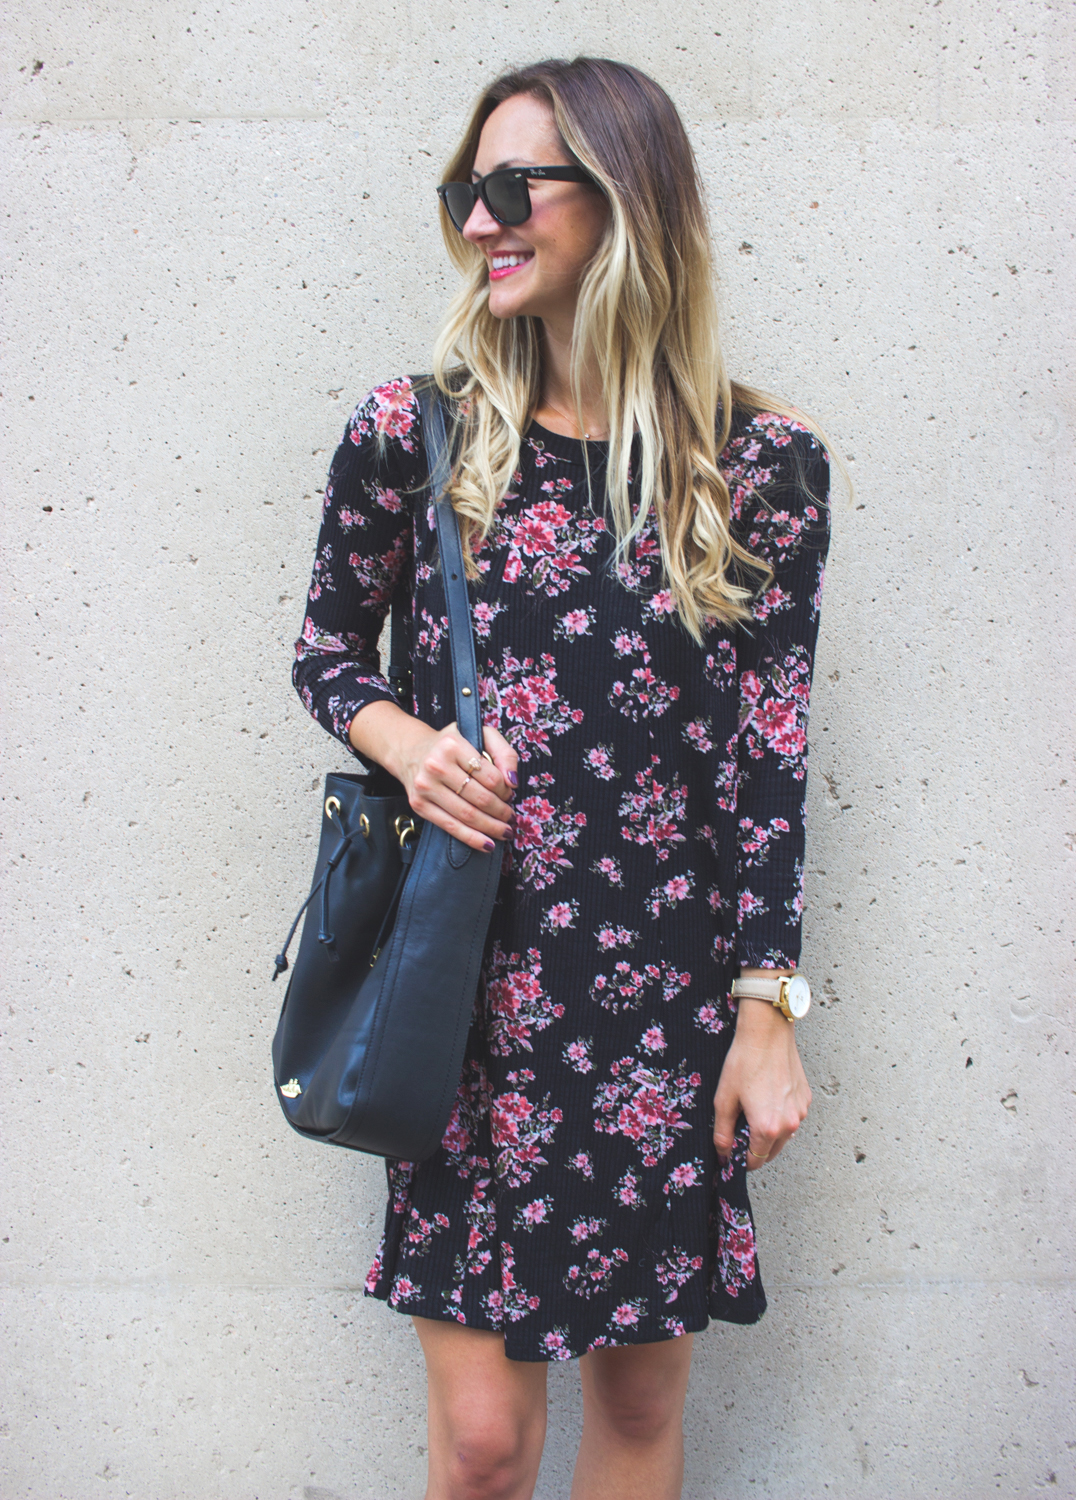 livvyland-blog-olivia-watson-lush-floral-black-shift-dress-brahmin-bucket-bag-ray-ban-wayfarer-sunglasses-madewell-slip-on-mules-4